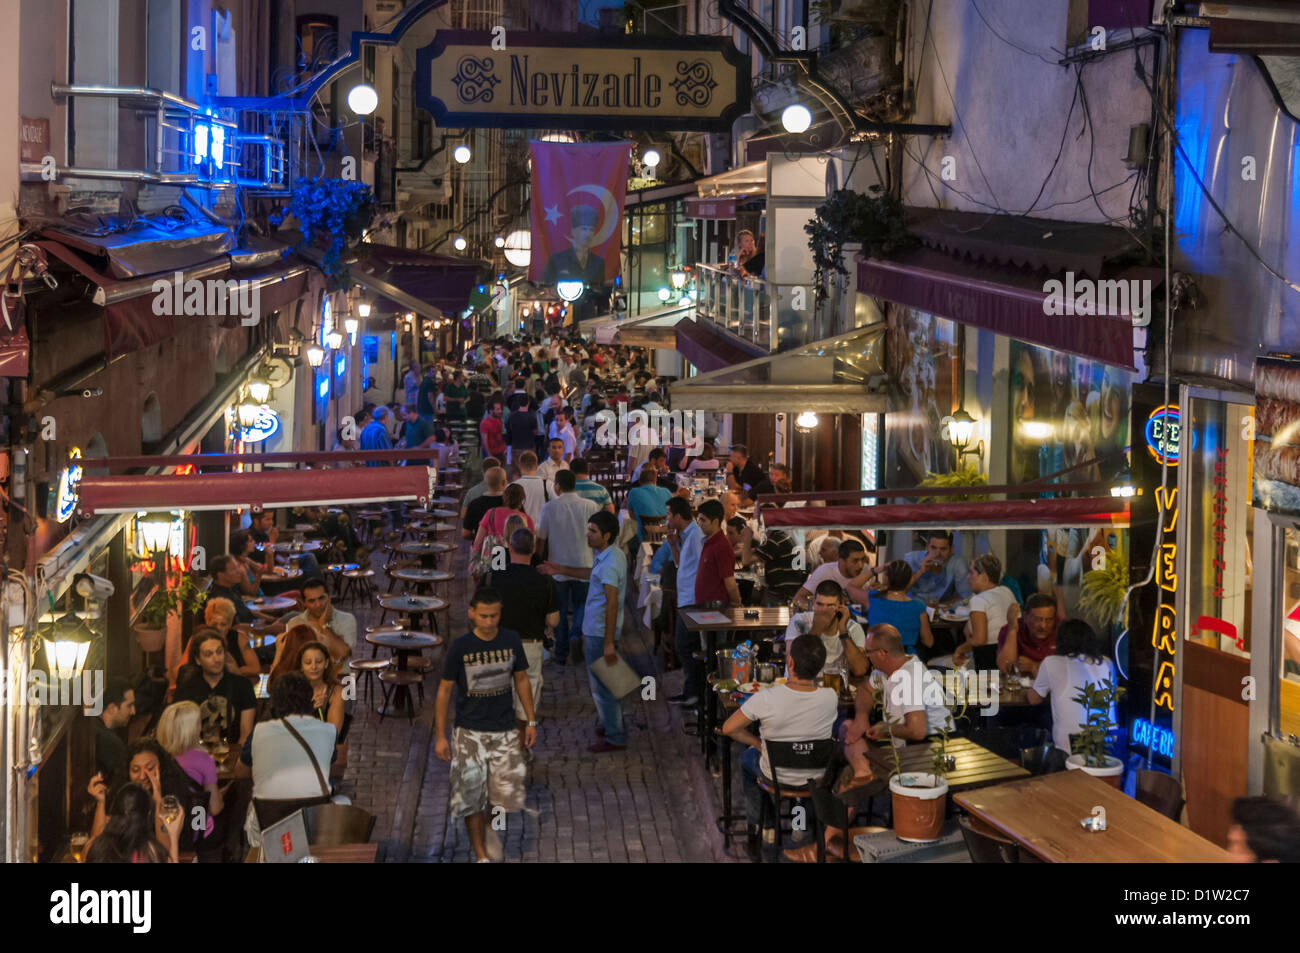 The lively Nevizade Street (Nevizade Sokak) in Beyoglu, located in the modern part of Istanbul,Turkey - Stock Image